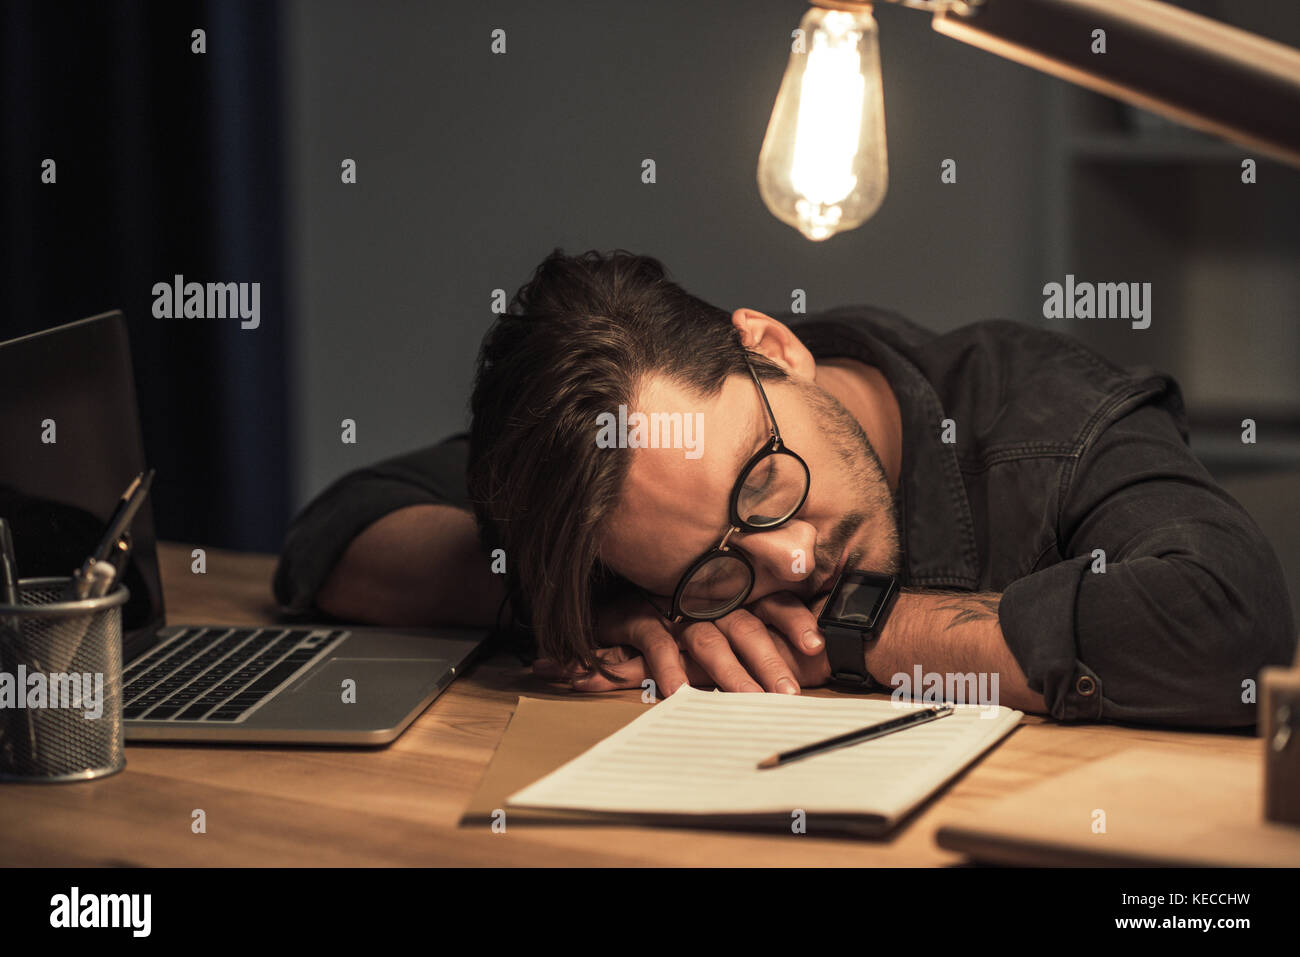 musician sleeping at workplace - Stock Image